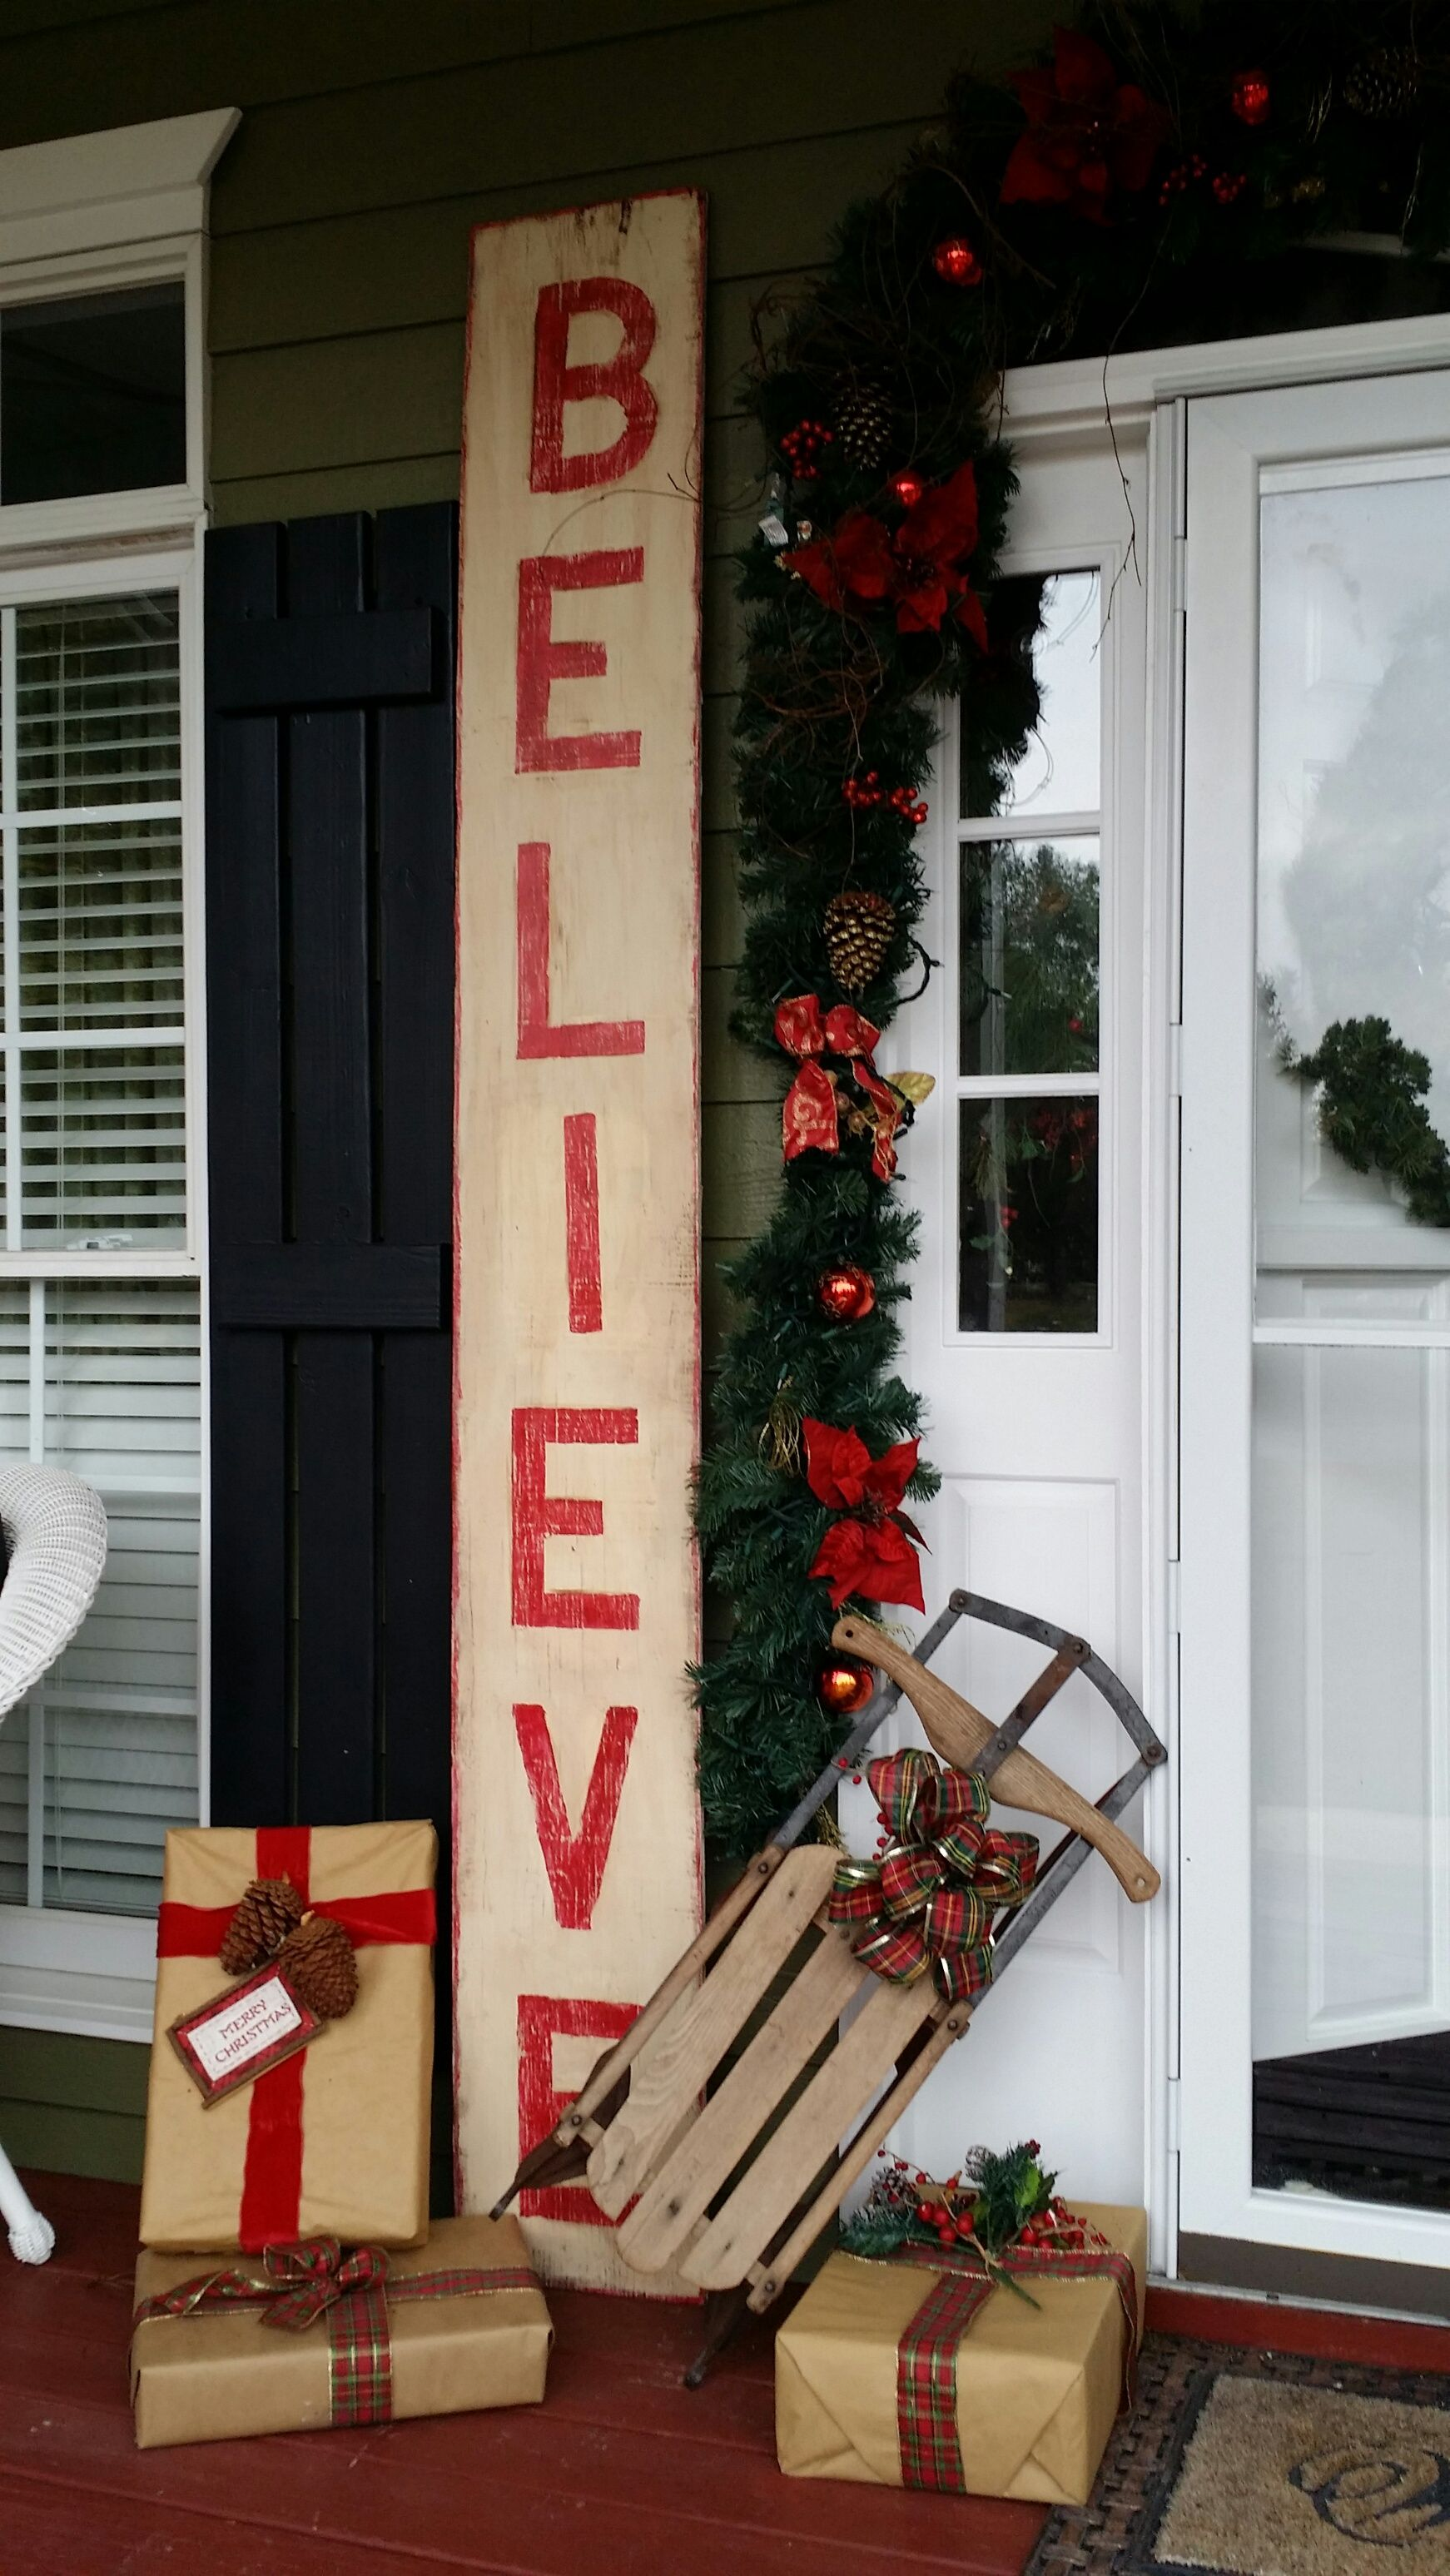 Believe Signs Decor Christmas Porch Decori Like The Idea Of Having Presents Around The